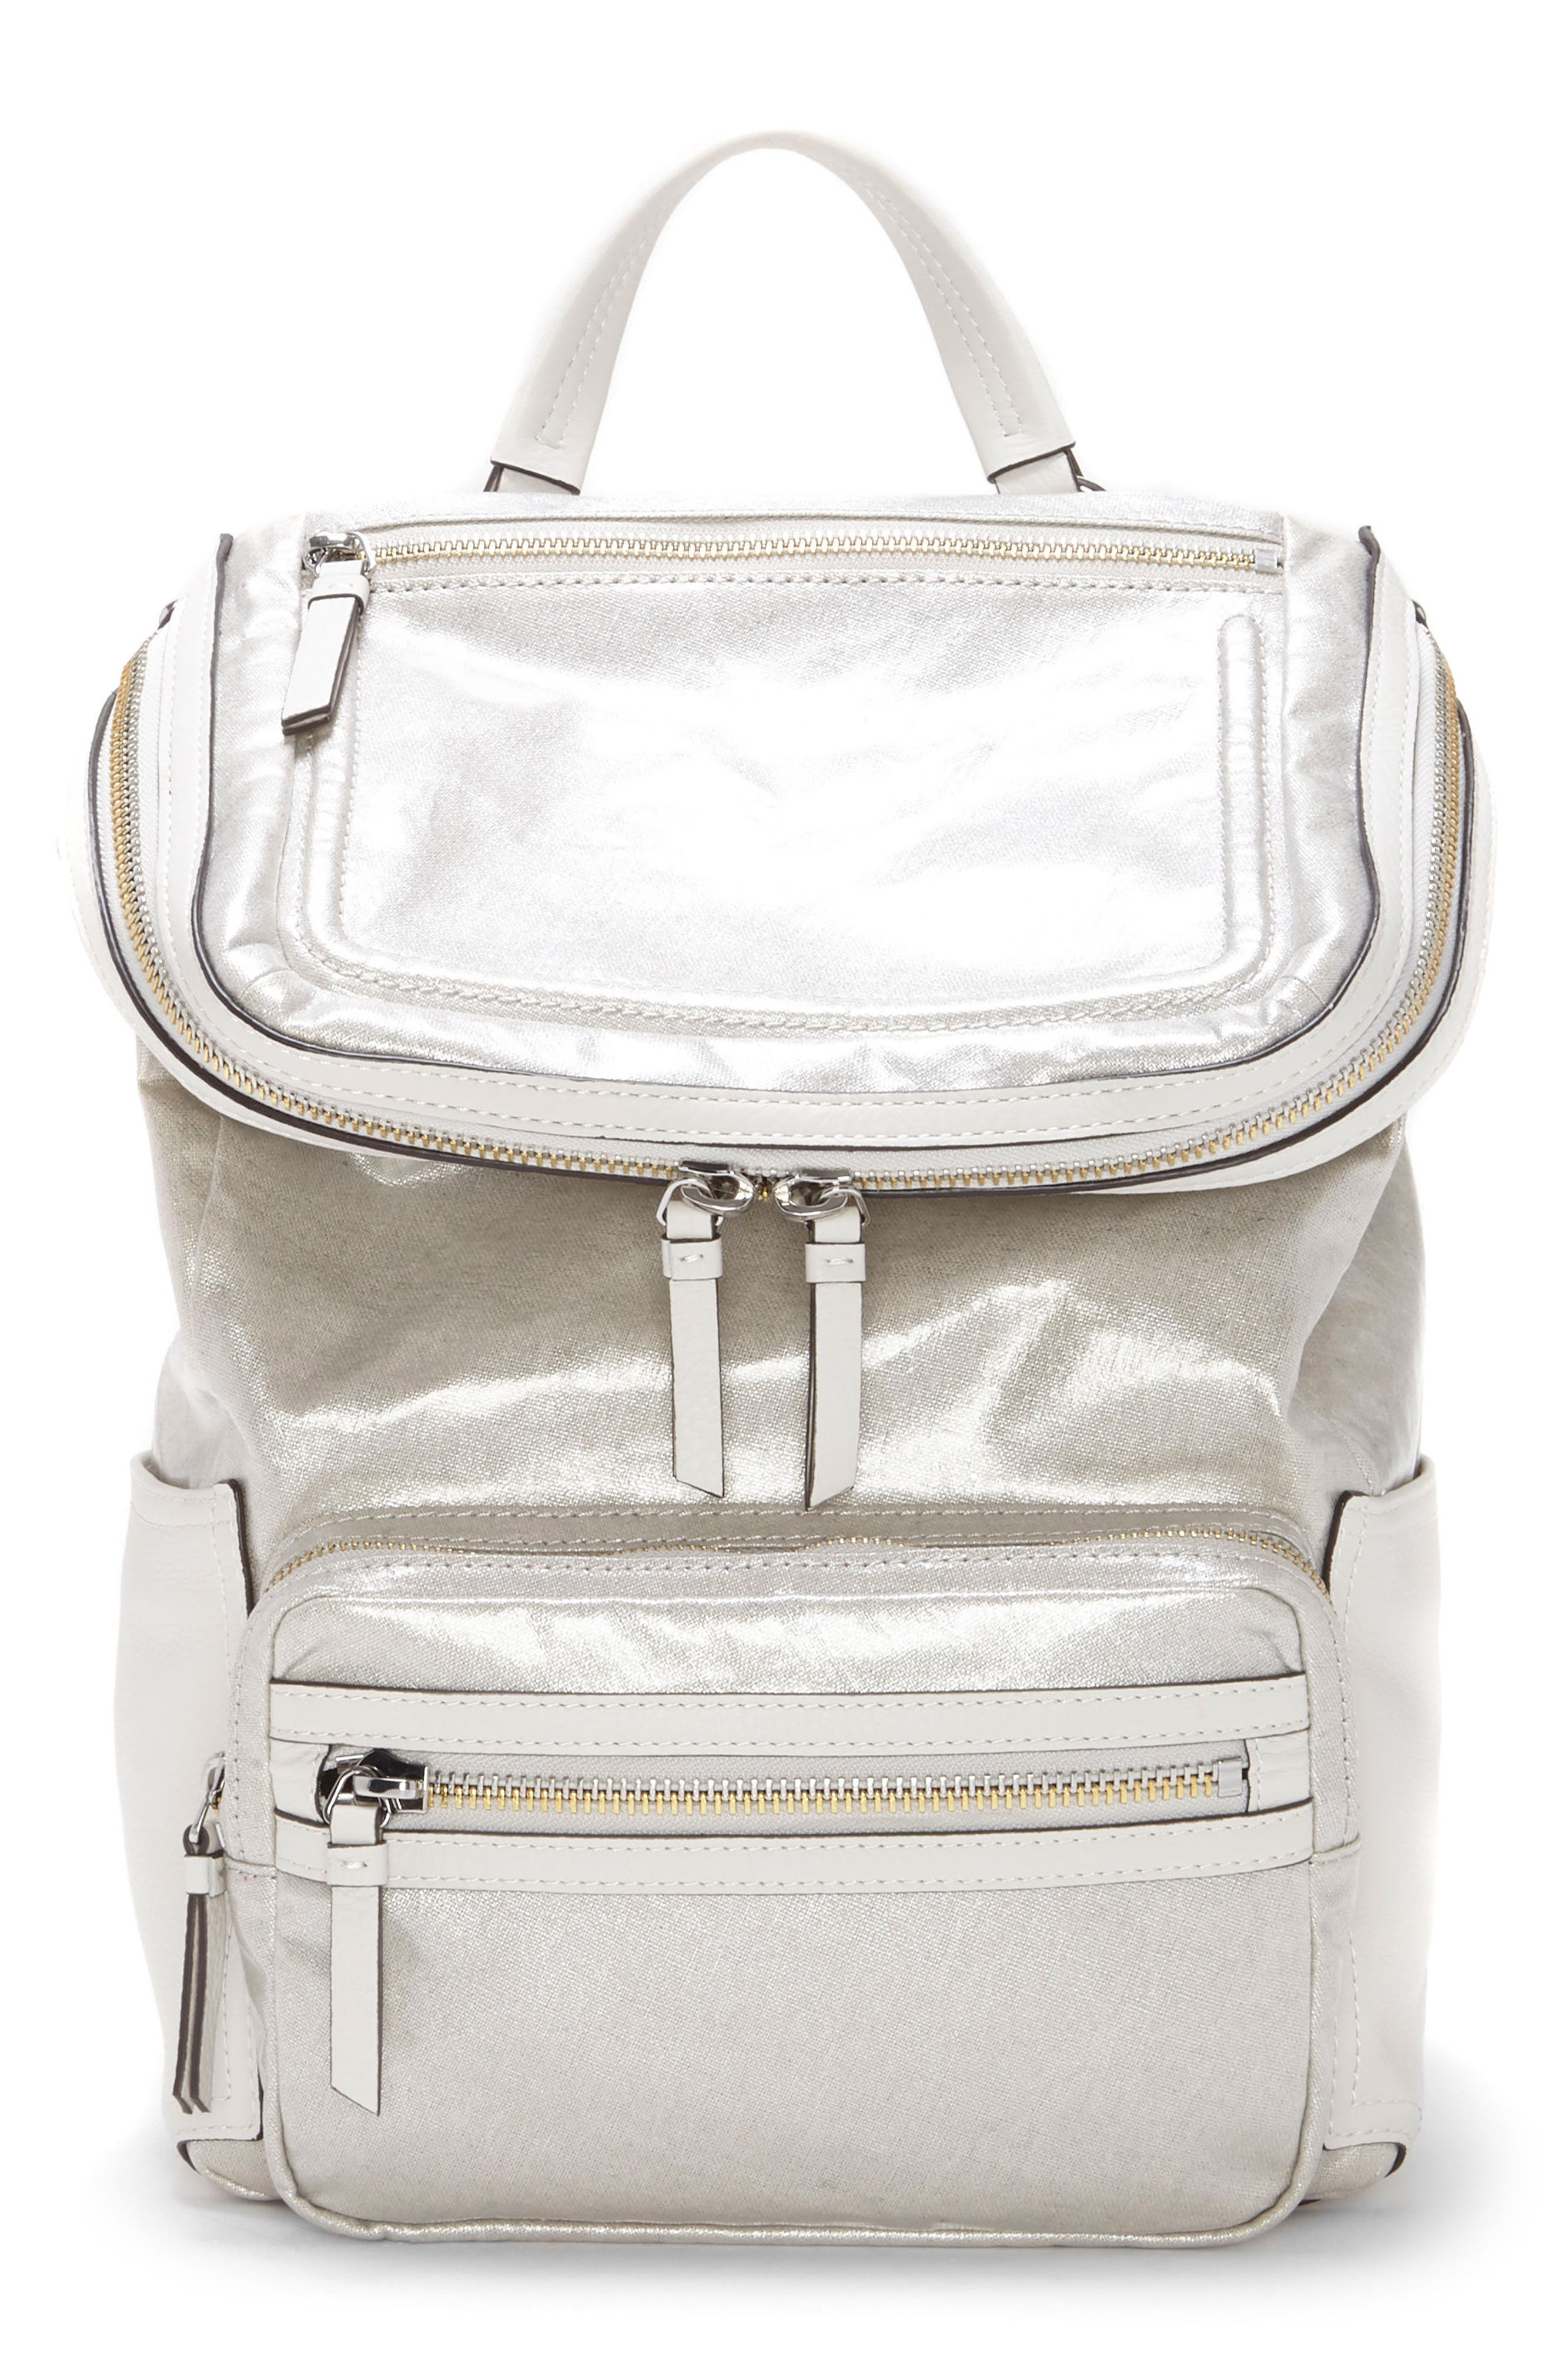 Patch NYL Leather & Nylon Backpack,                             Main thumbnail 1, color,                             Silver